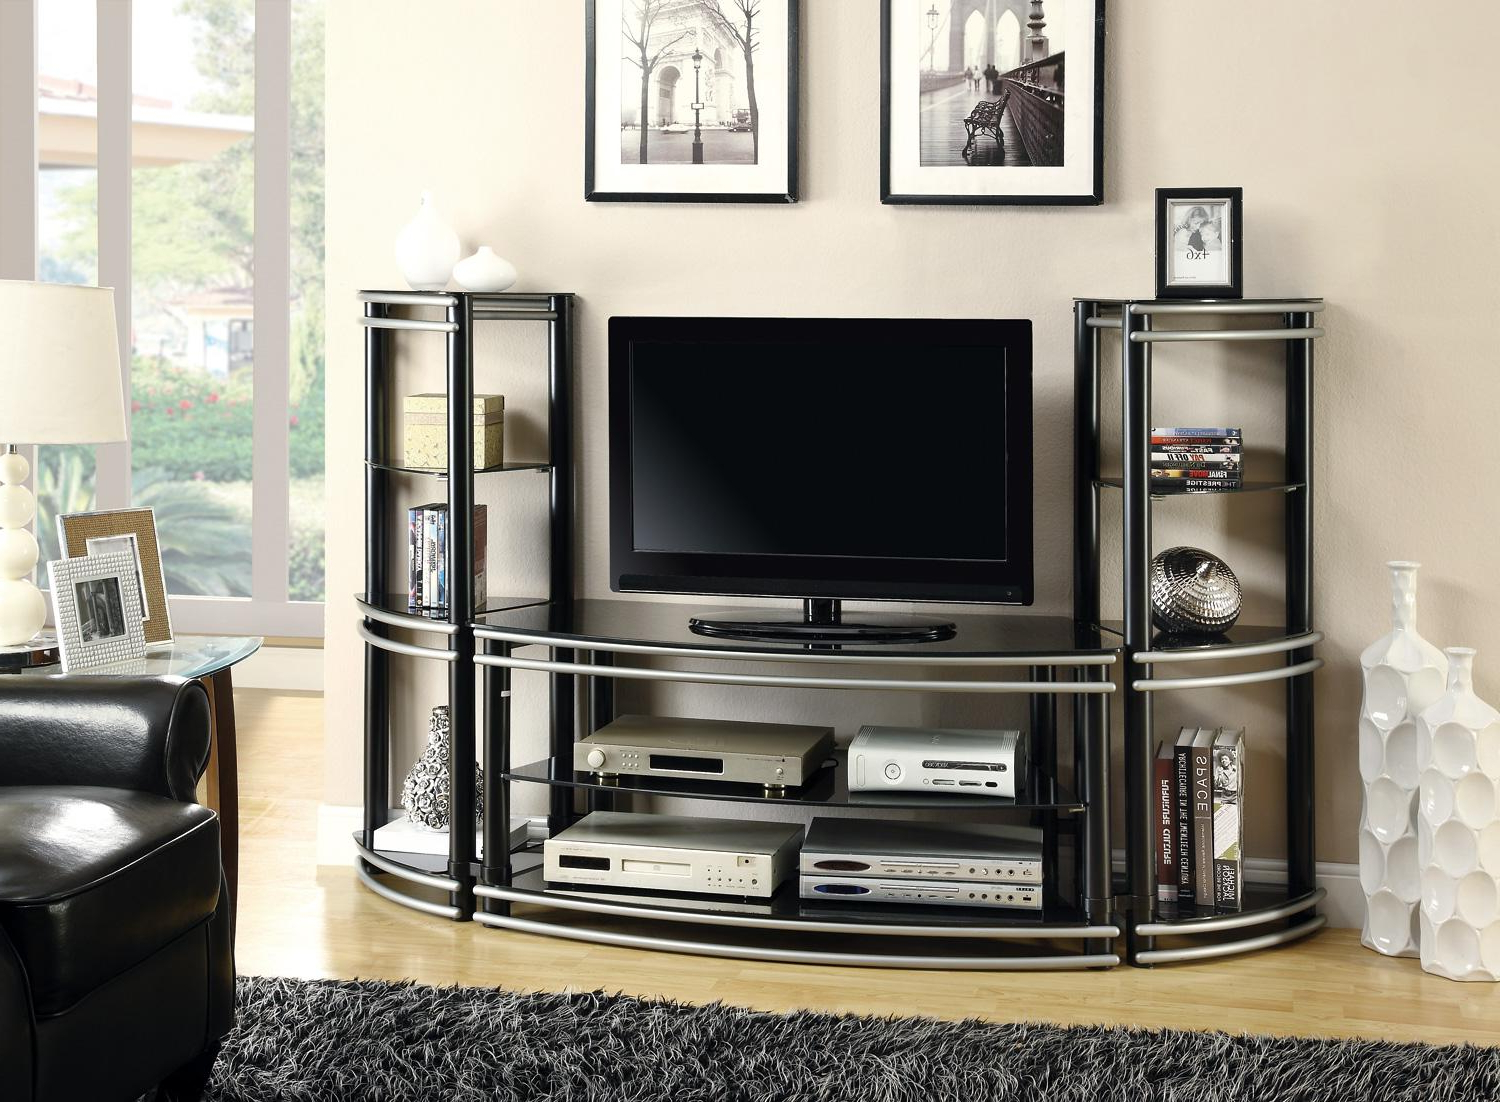 Most Recent Ikea Besta Corner Tv Stand For 55 Inch Hack Entertainment Cabinet In Open Shelf Tv Stands (View 7 of 20)